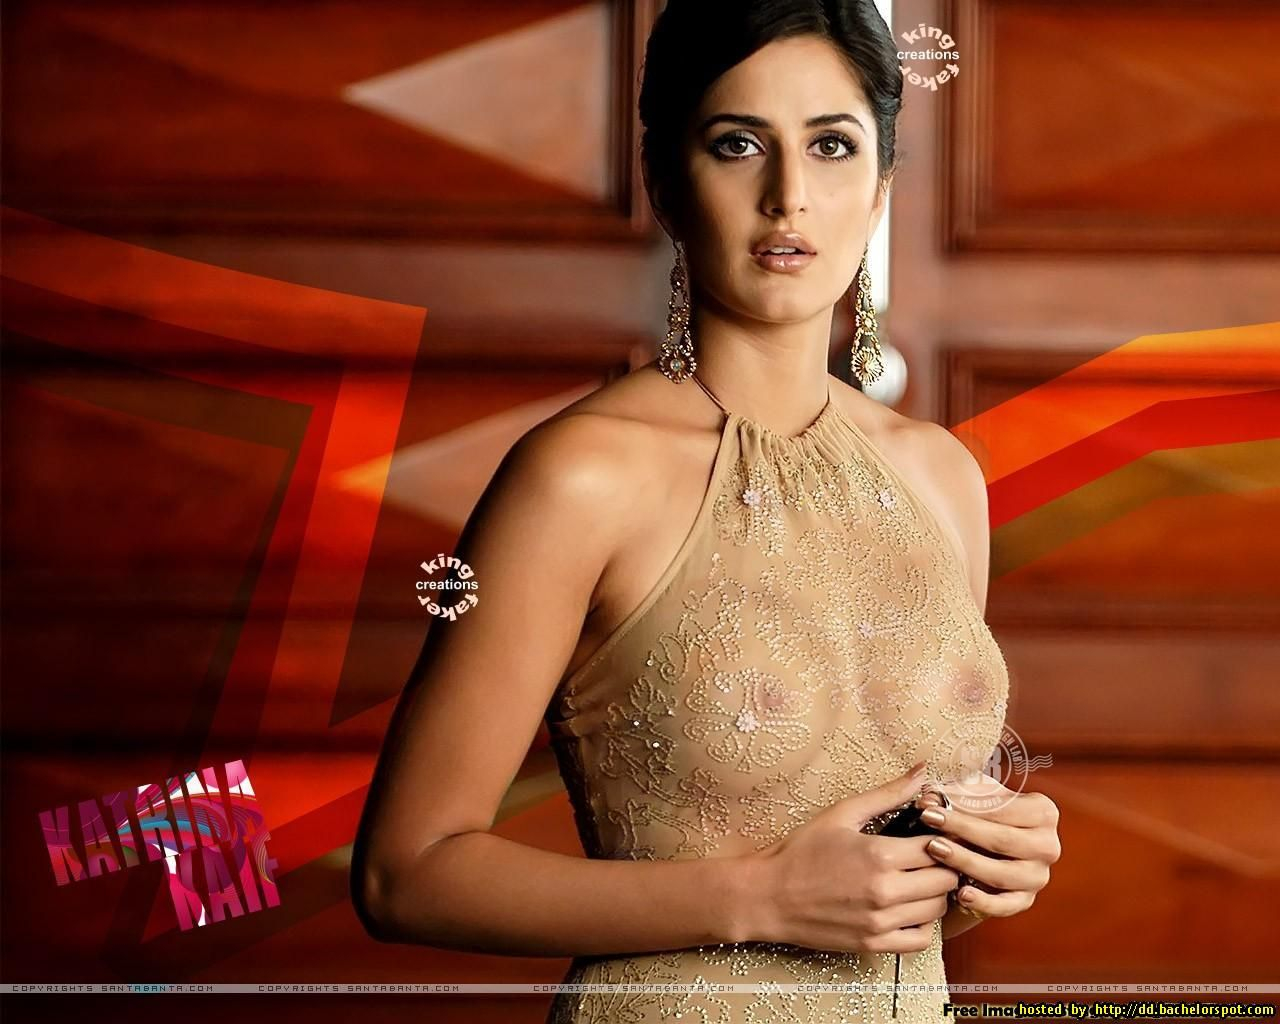 wallpaper nude hindi download katrina kaif heroine